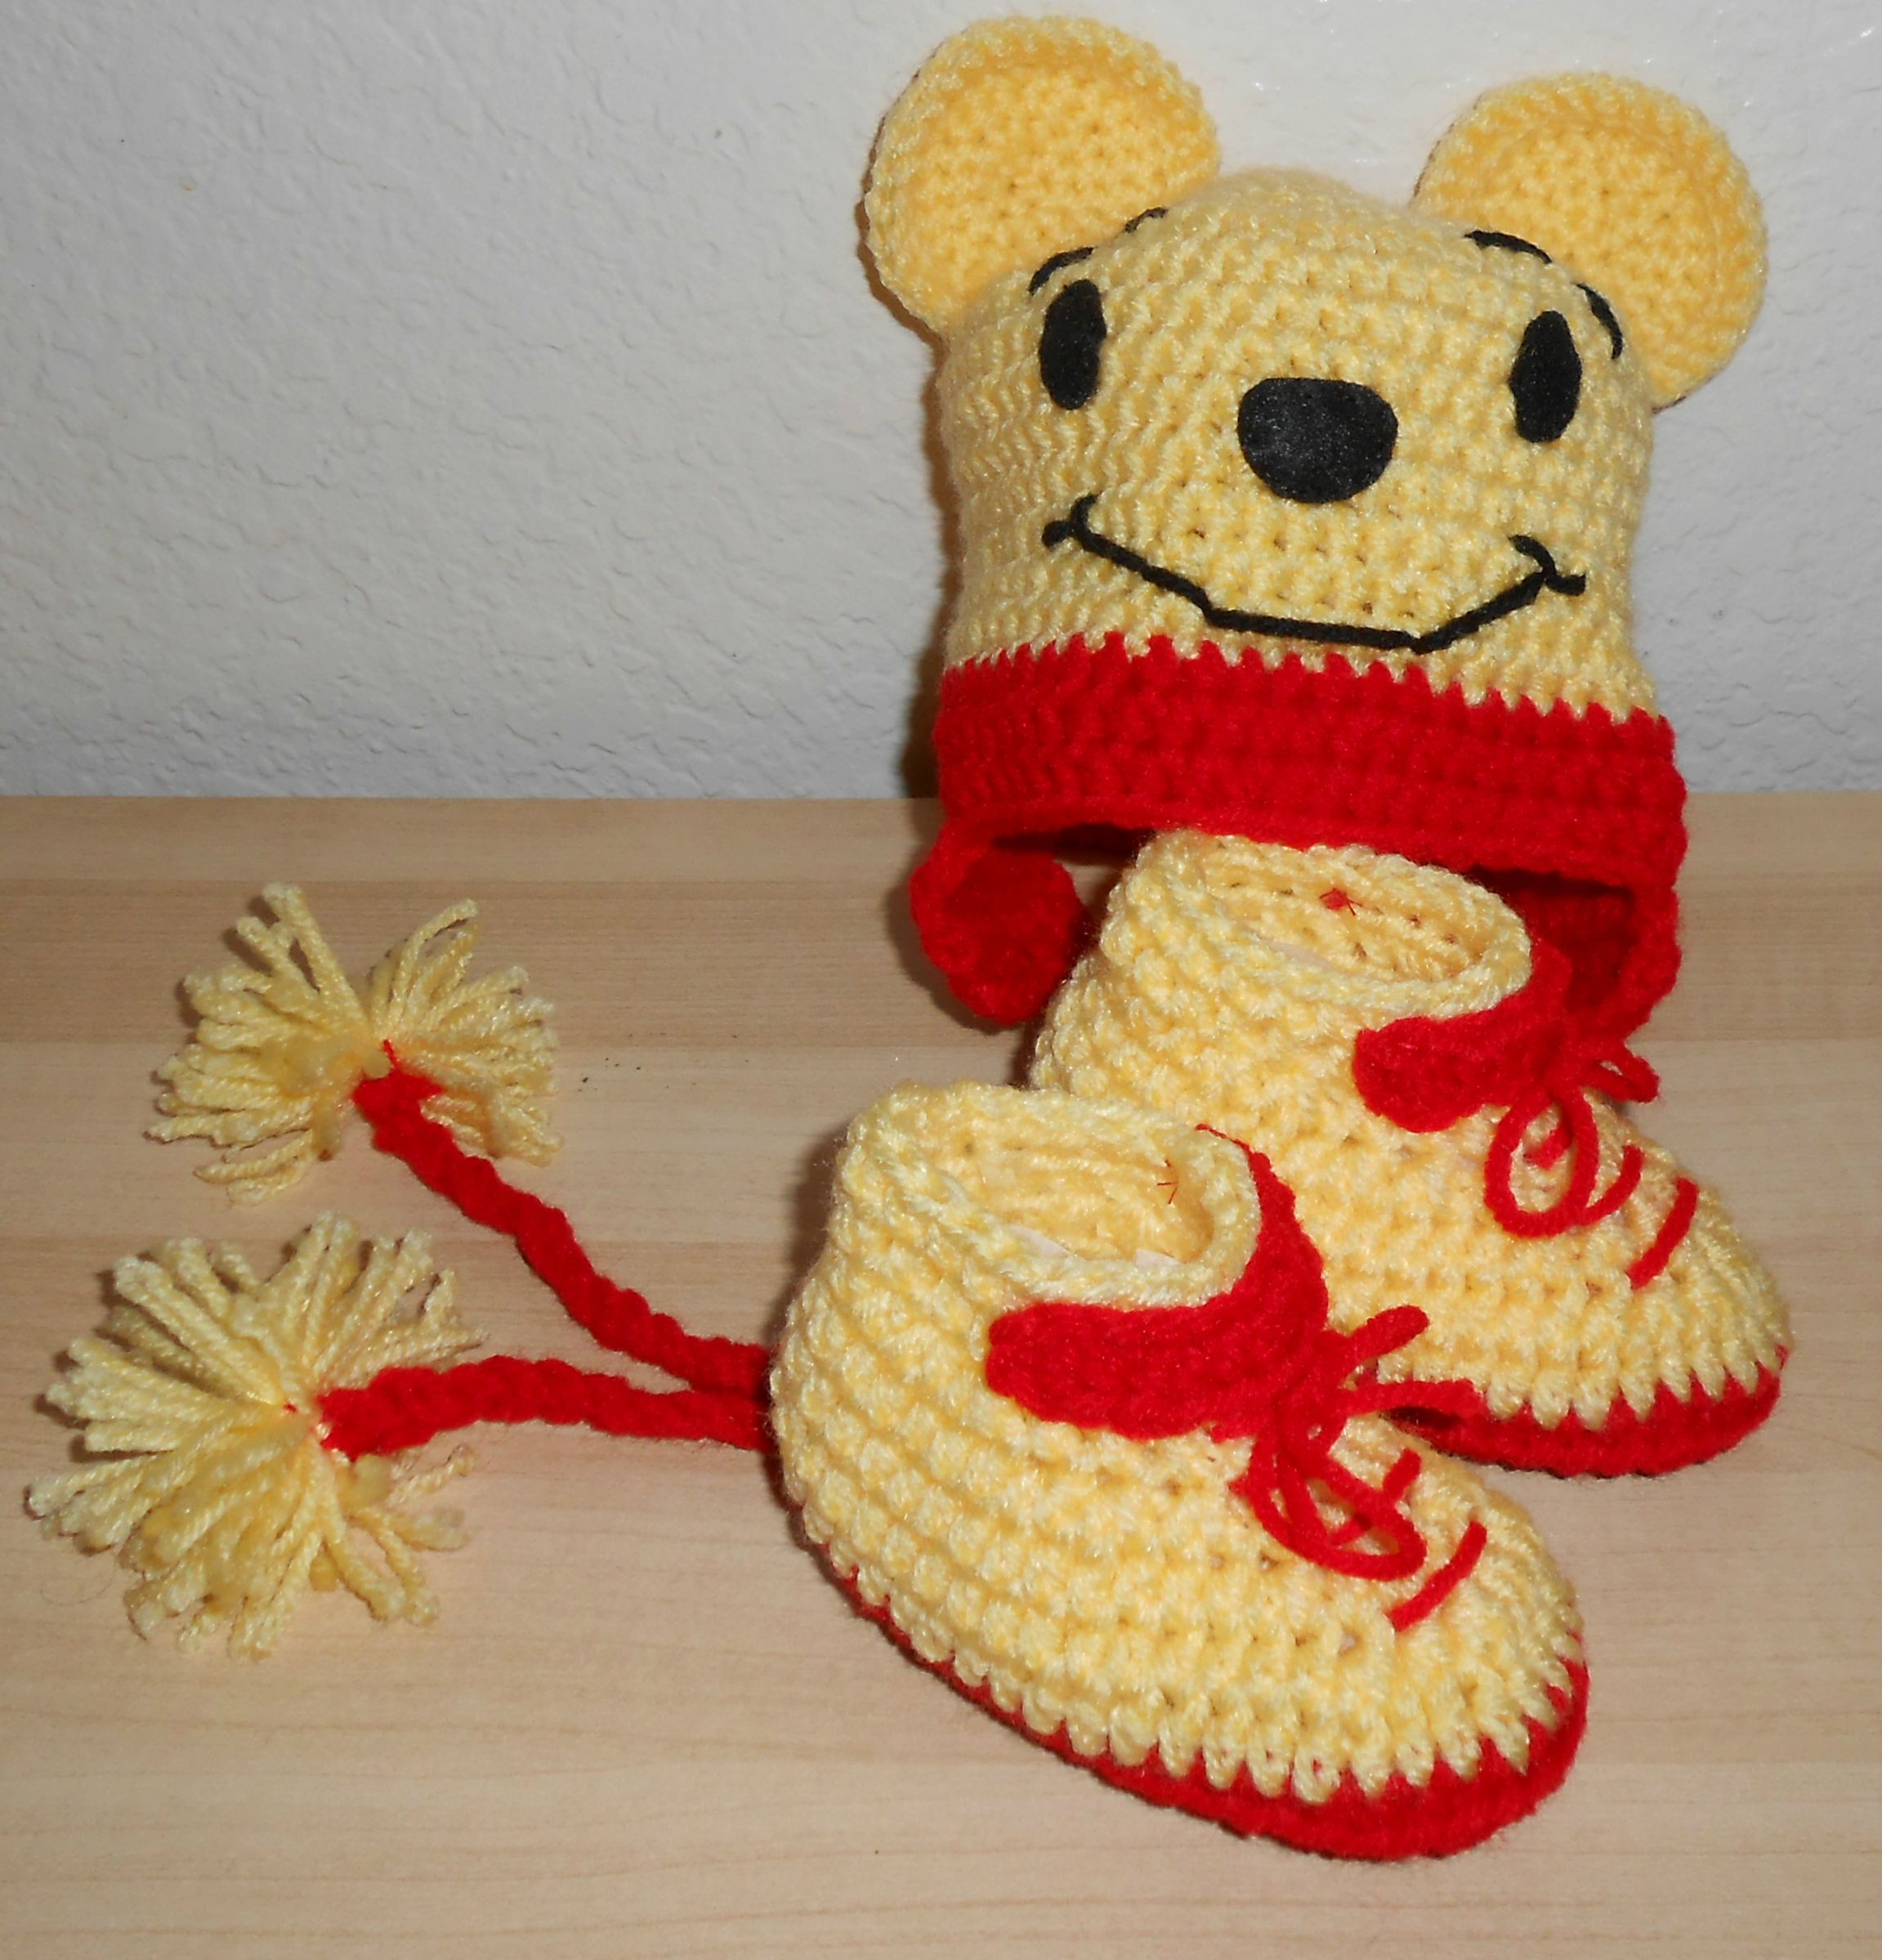 Winnie the Pooh Crochet Unique Winnie the Pooh Hat and Booties Set Crochet Of Wonderful 41 Ideas Winnie the Pooh Crochet